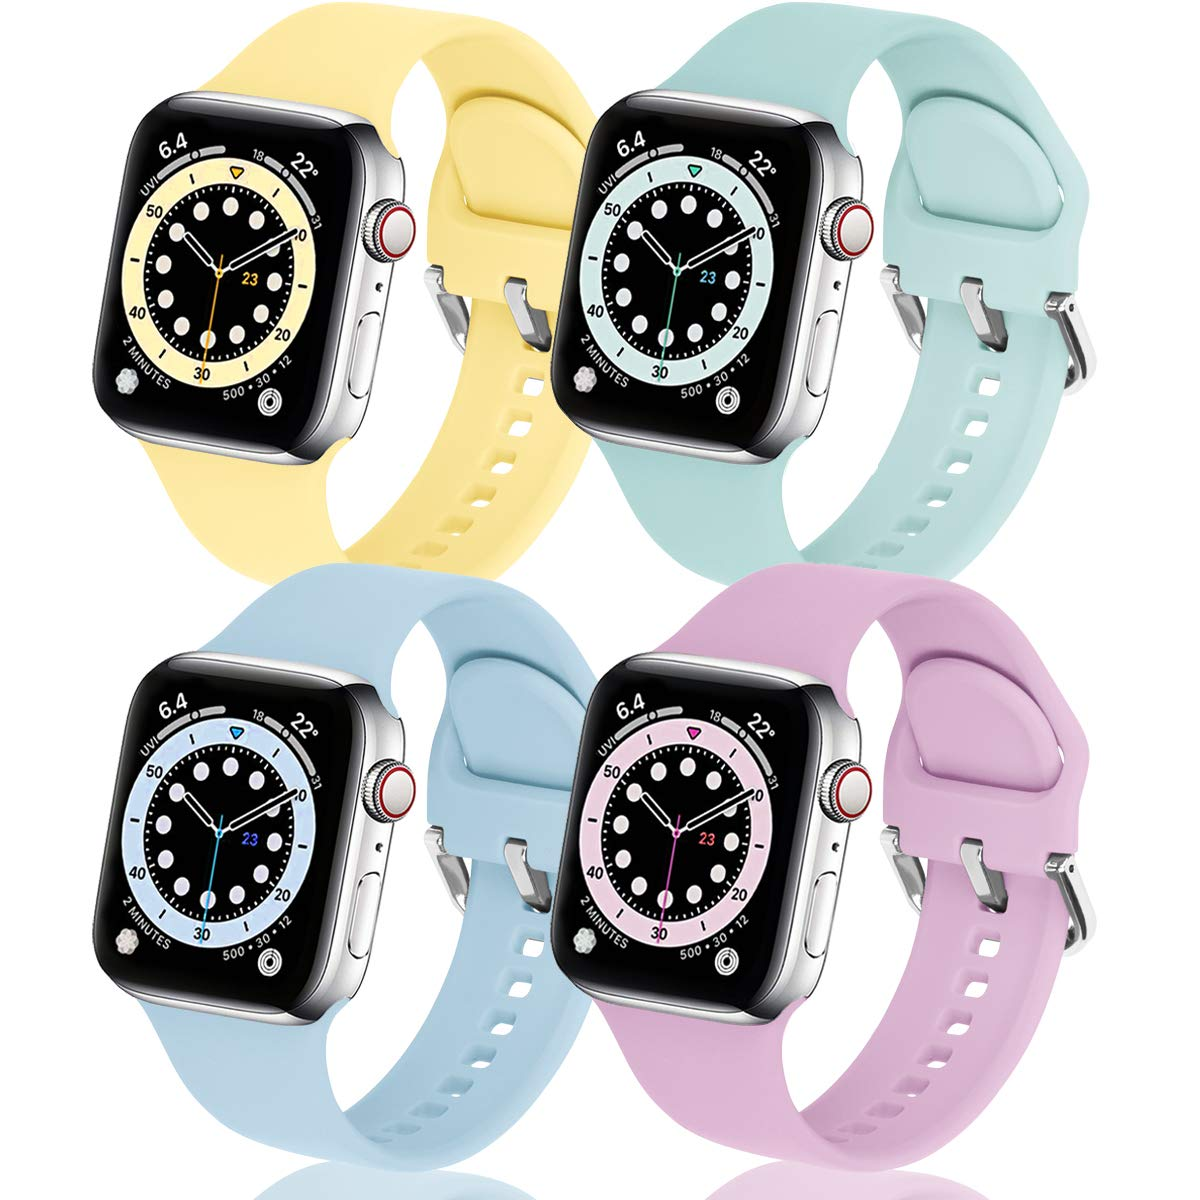 eCamframe Bands Compatible with Apple Watch Band 40mm 38mm 42mm 44mm, 4 Pack Soft Silicone Sport Replacement Wristband Compatible with iWatch Series 6 5 4 3 2 1 & SE Men Women